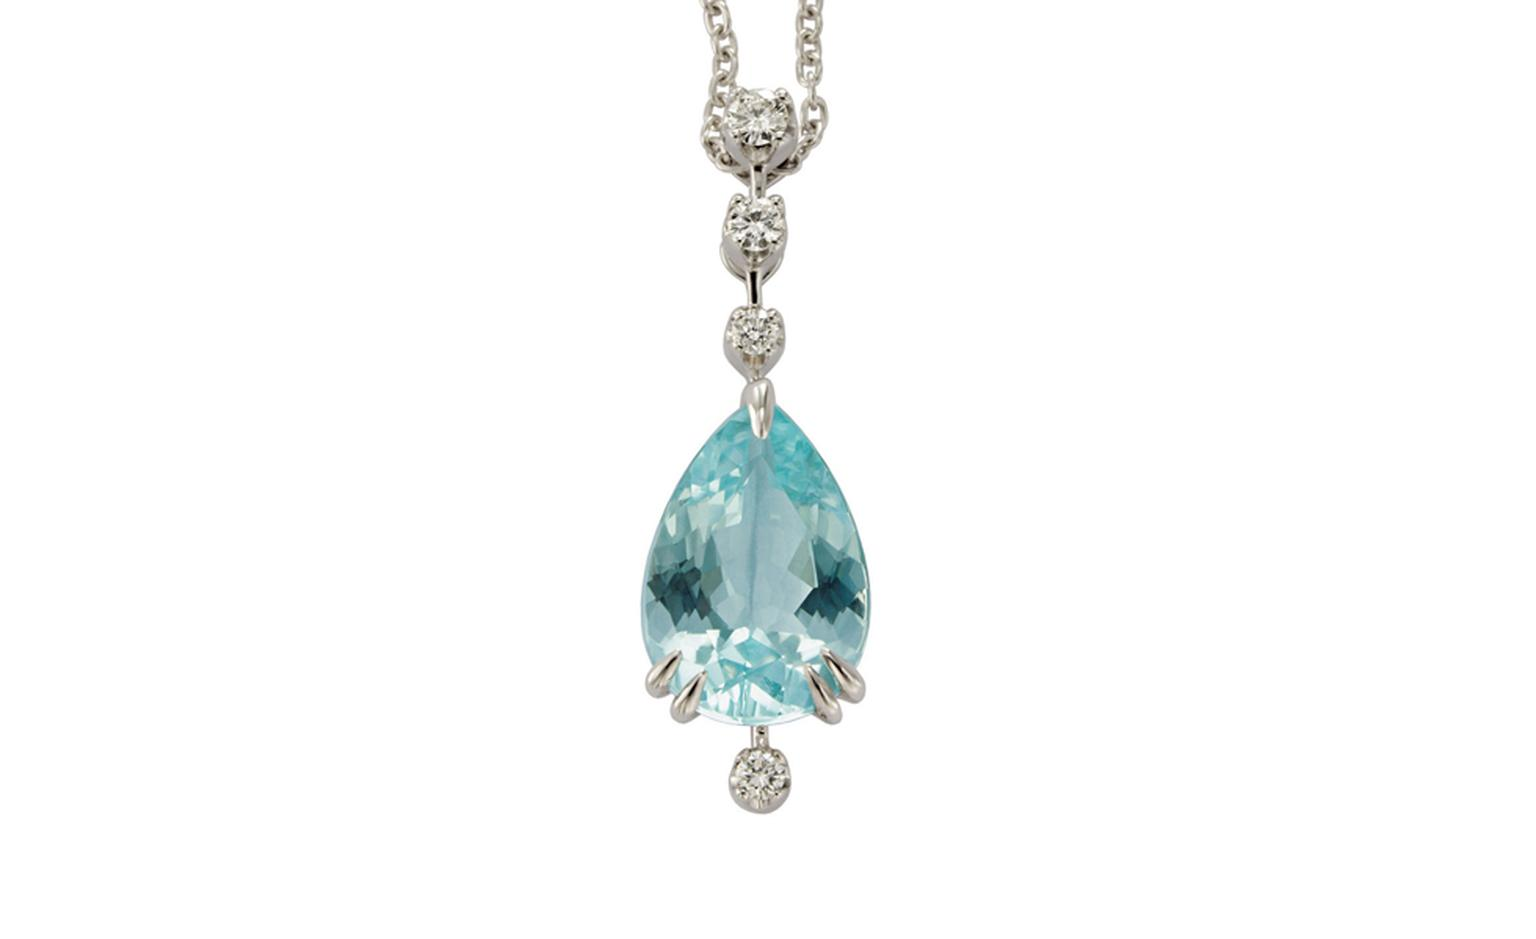 H.STERN. Paraiba Tourmaline Pendant. Price from £19,400